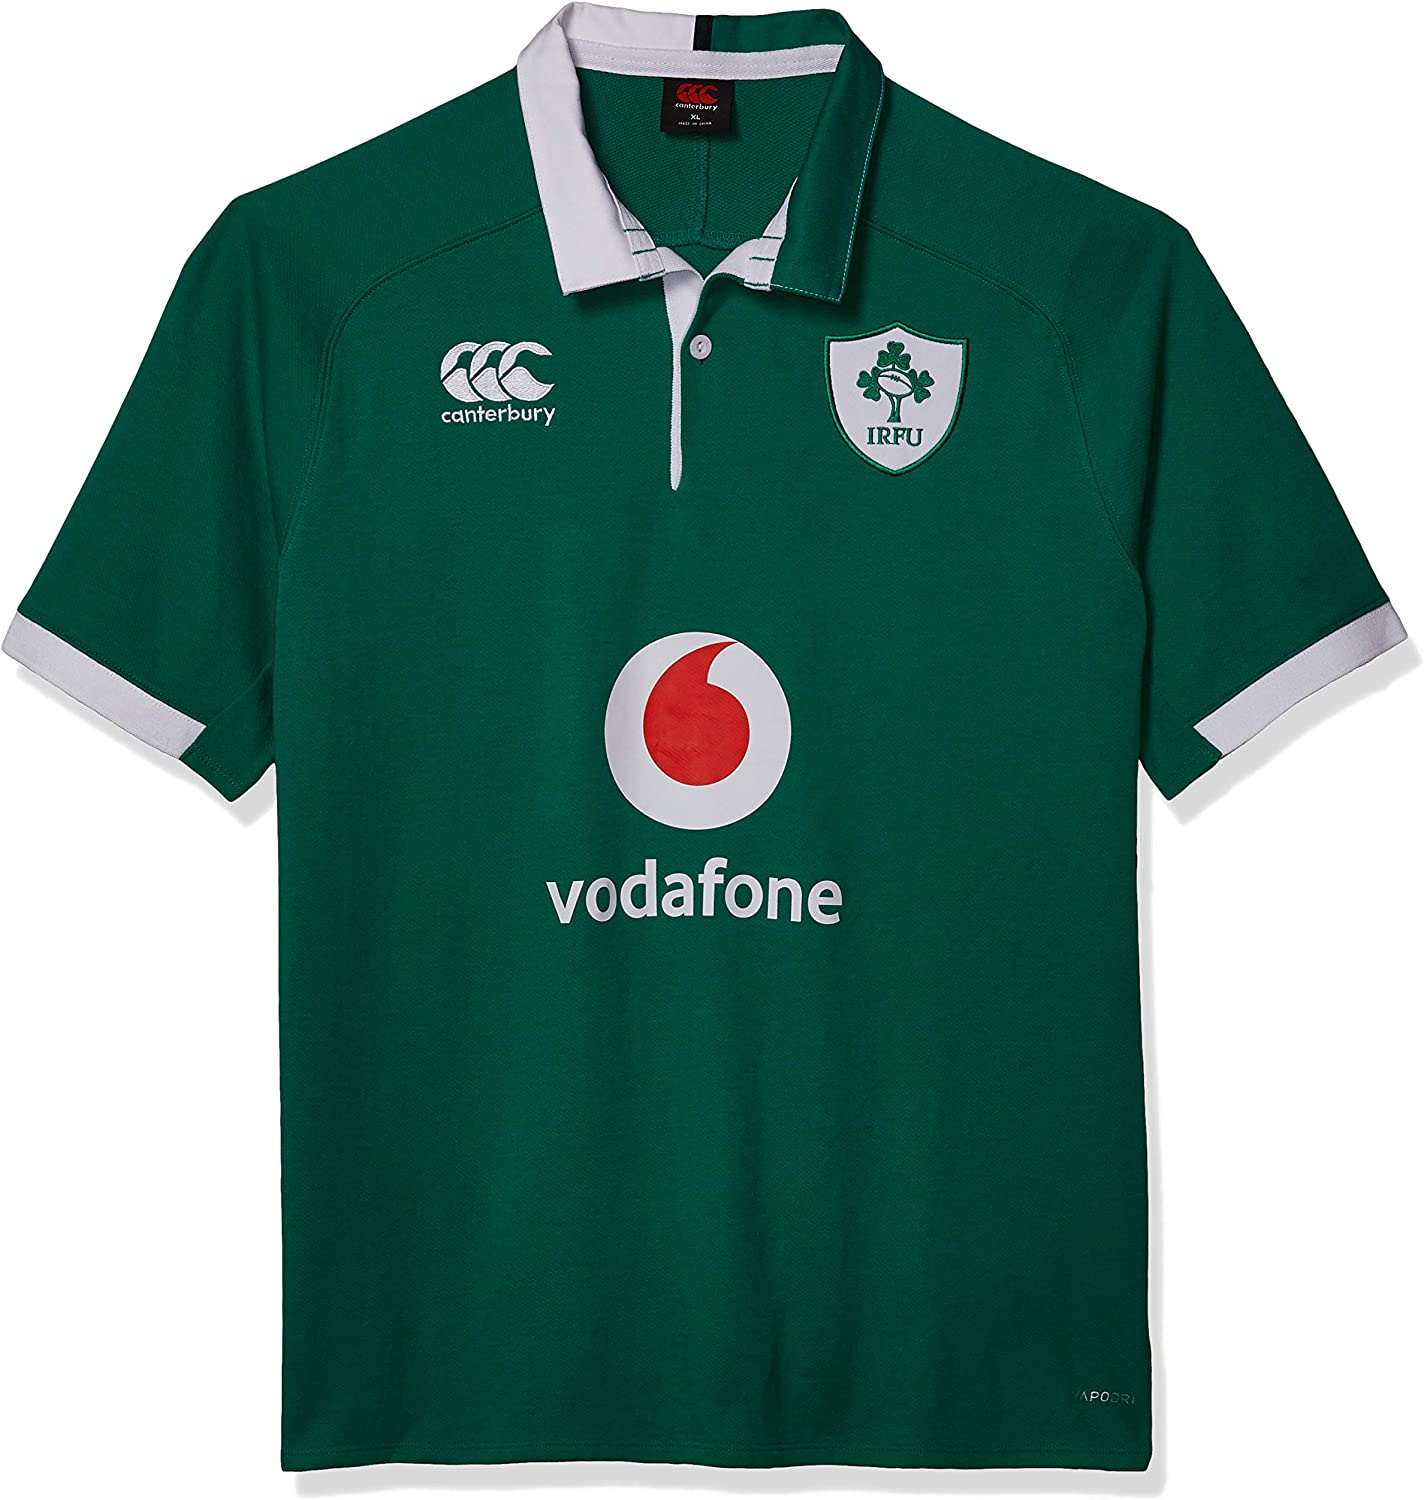 Canterbury Official 19/20 Ireland Rugby Men's Vapodri Home Short Sleeved Classic Jersey